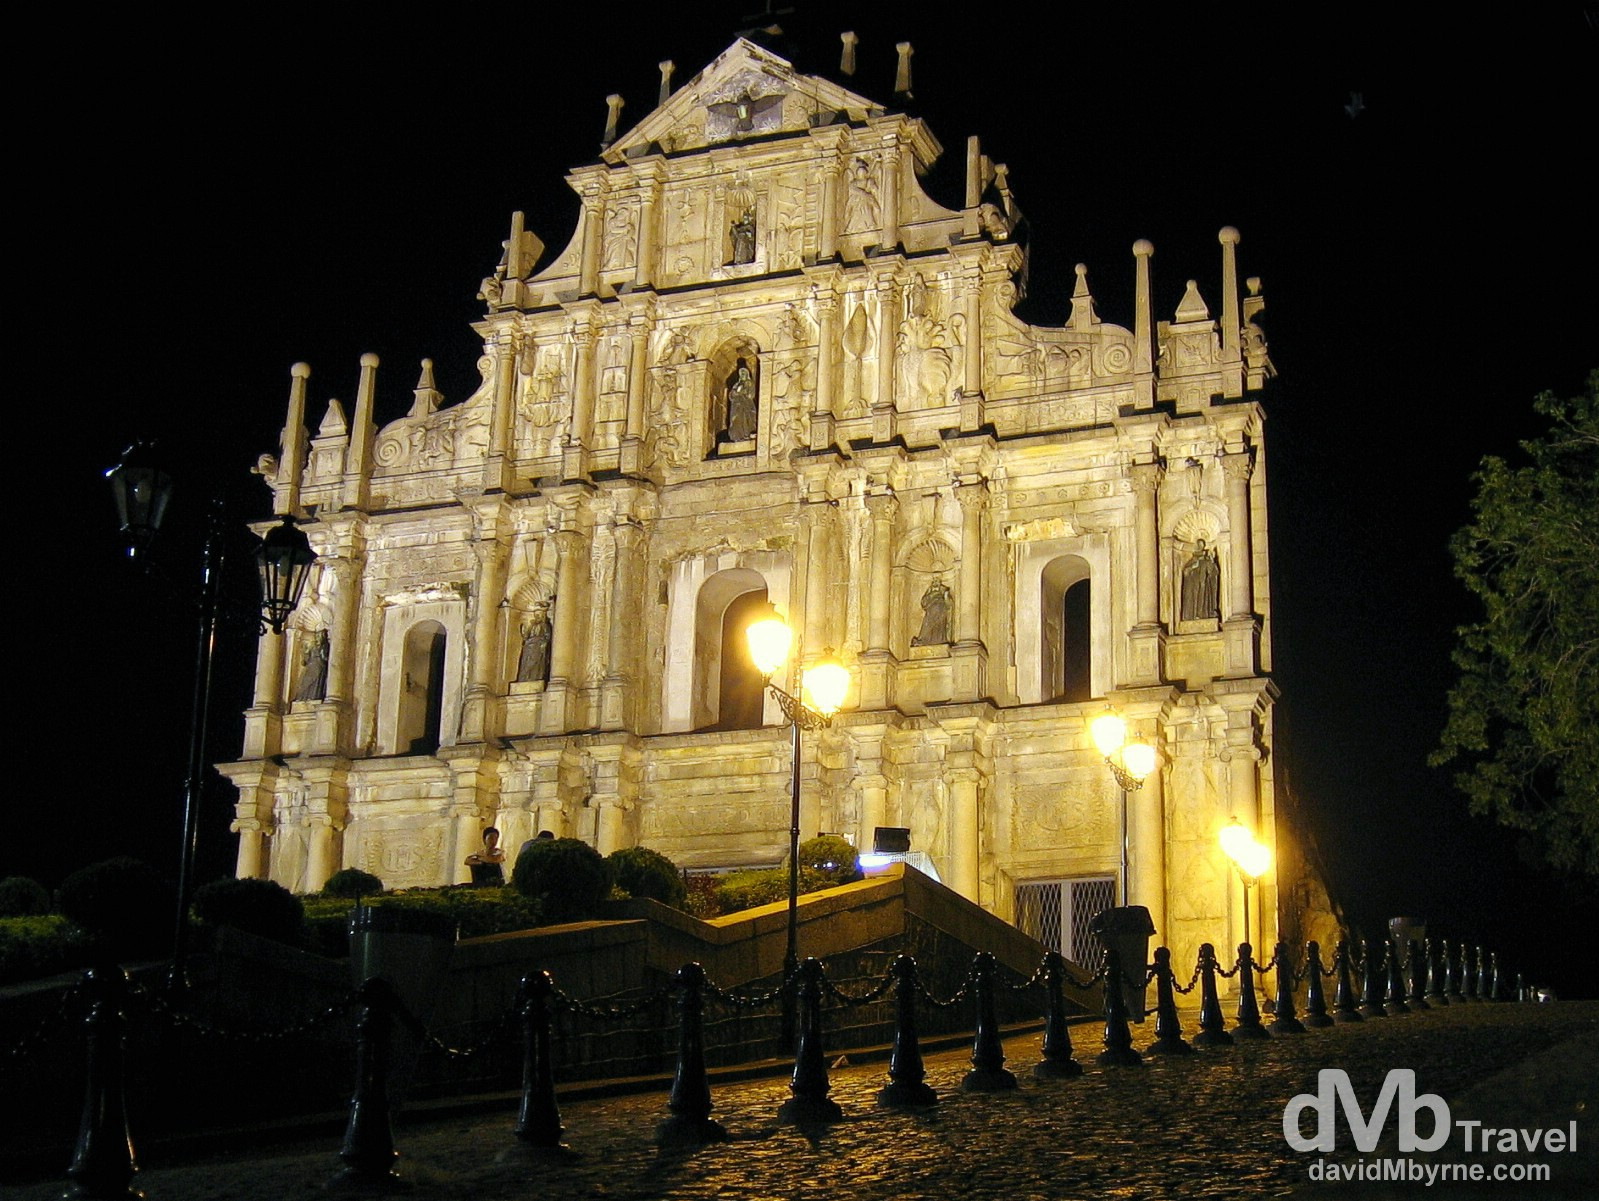 The façade of Ruins of Sao Paulo (St Paul's) in Macau, China. August 29th 2005.